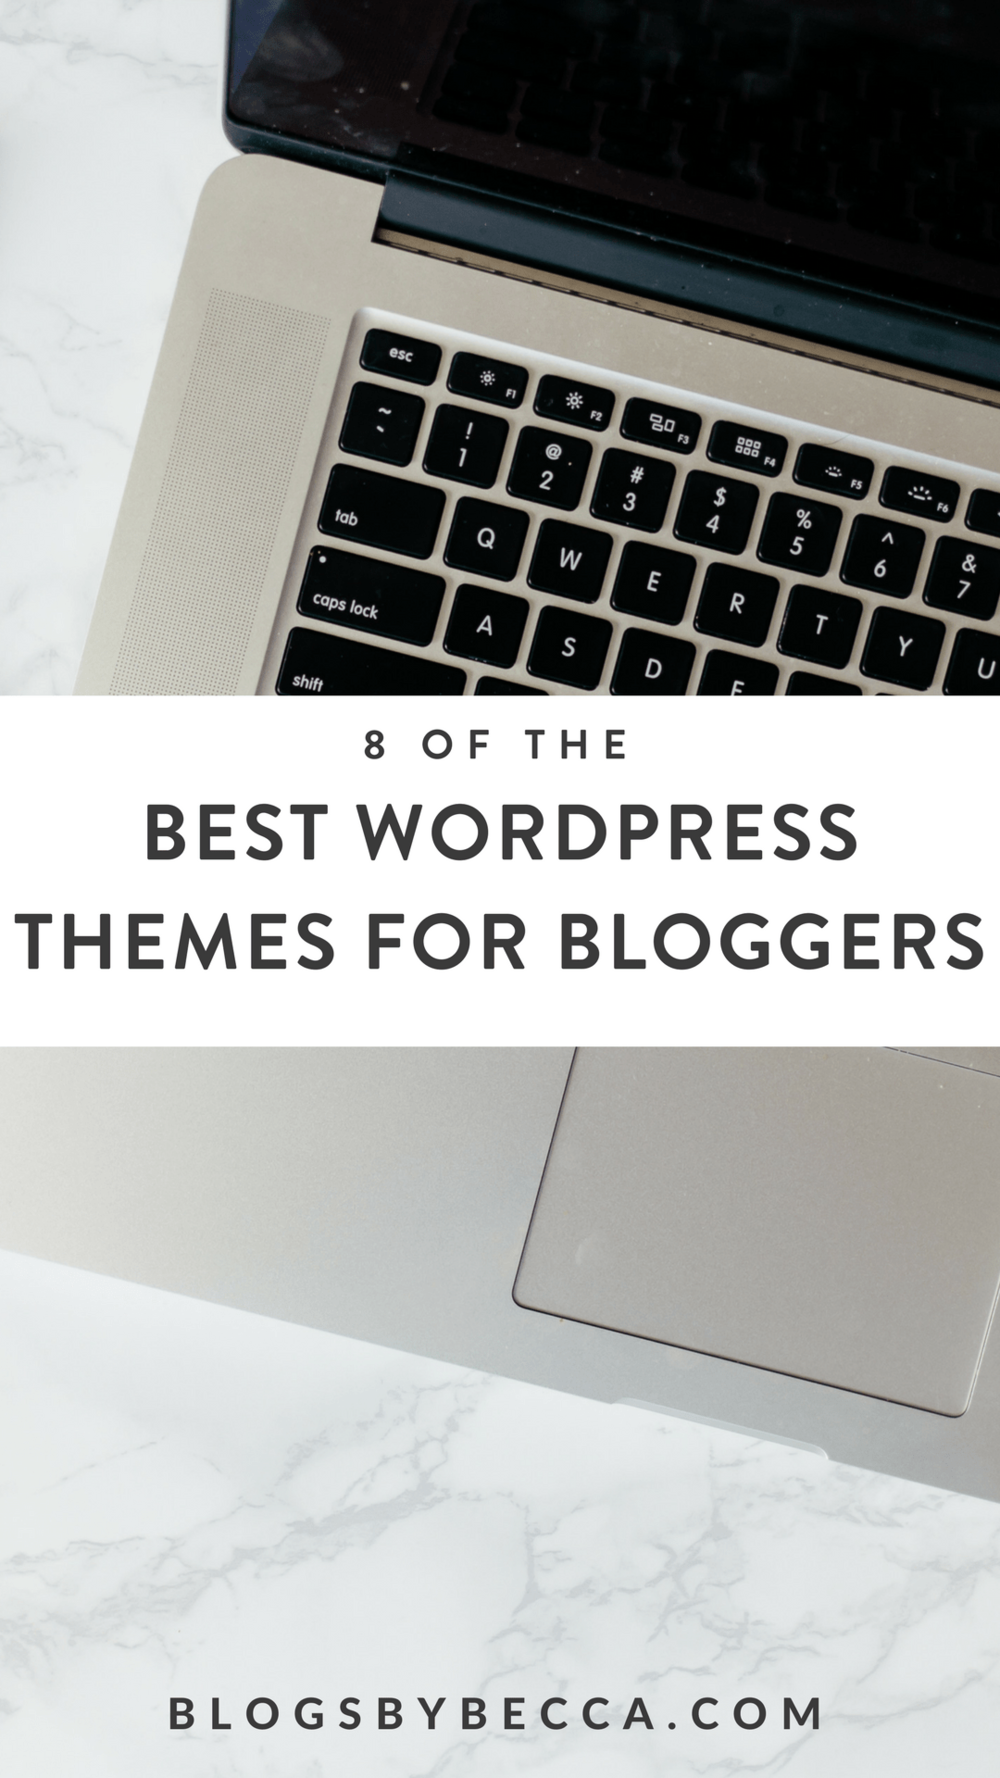 The Best Wordpress Themes for Bloggers! These Wordpress themes are great for beginner bloggers or advanced bloggers. Designing your blog is easy with these themes. Click through to see them all! #blog, #blogger, #blogtips, #blogbiz, #wordpress, #blogthemes